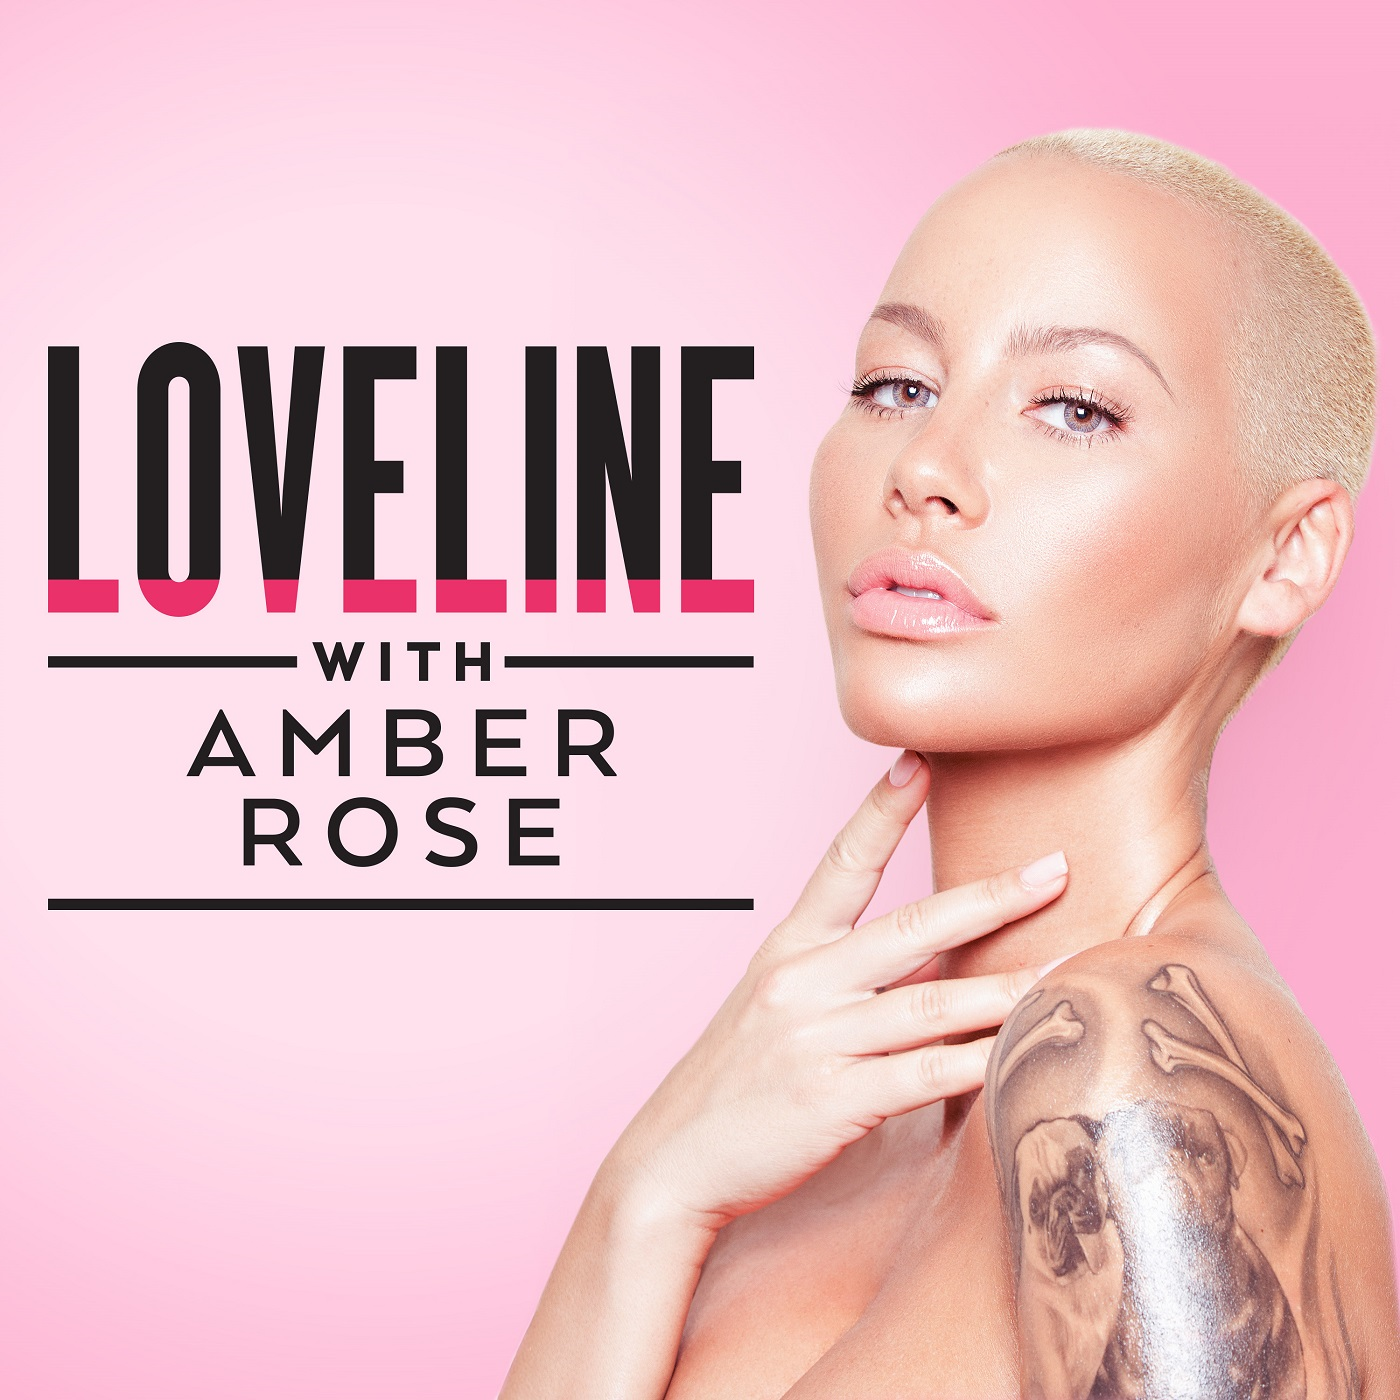 Loveline with Amber Rose